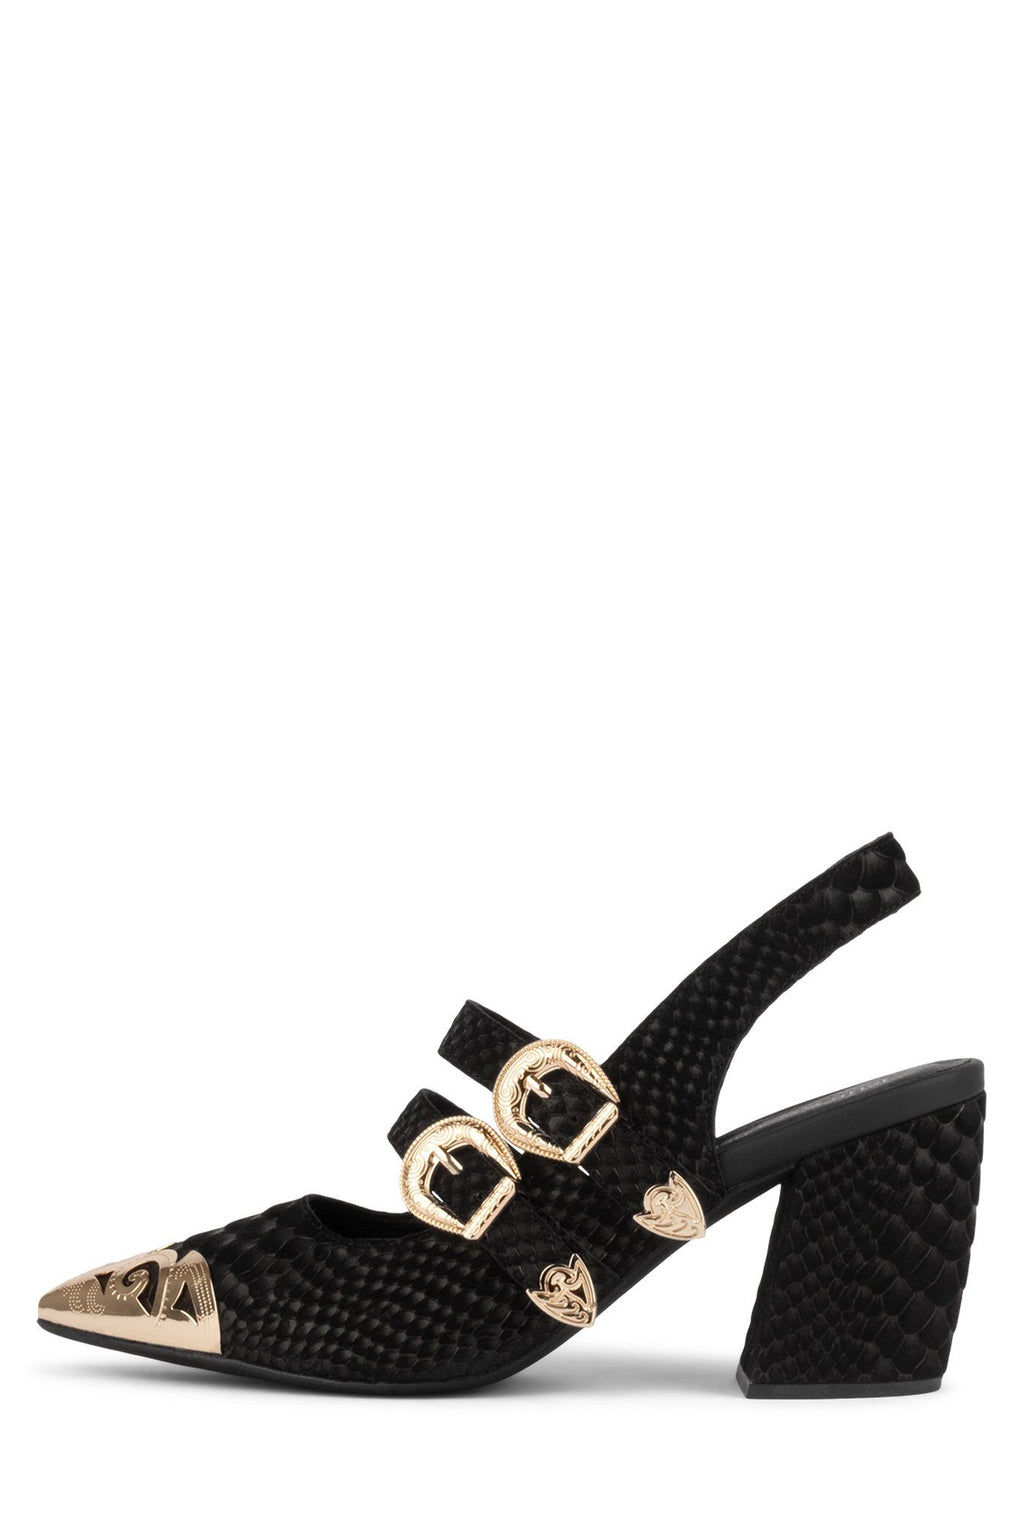 WALTER Pump Jeffrey Campbell Black Matte Snake Gold 6